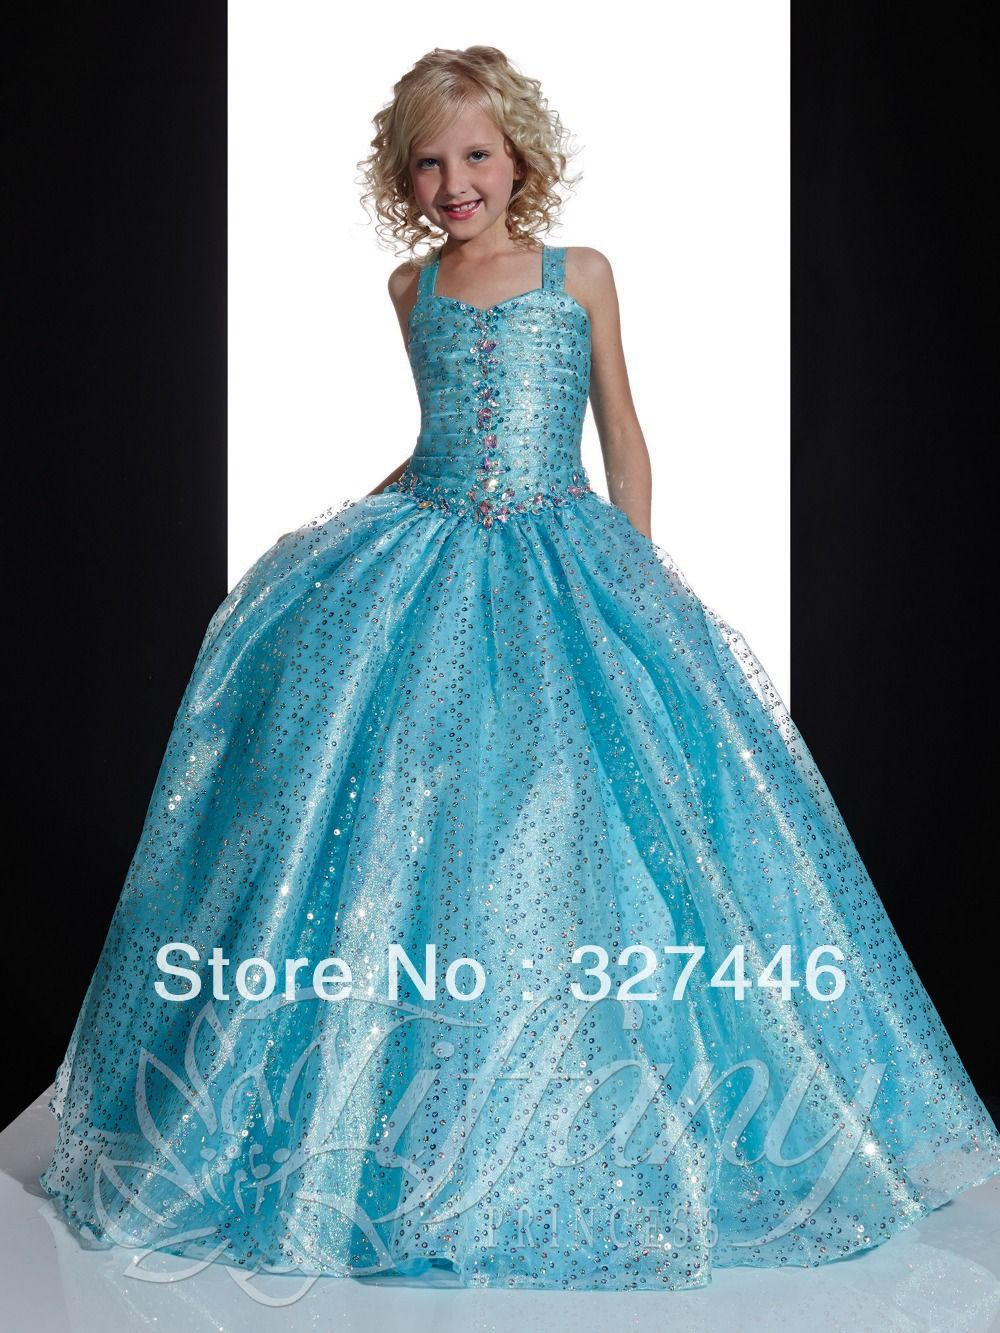 Glitz Puffy Cute Ball Gown New Bateau Long Blue Crystal Flower Girl ...